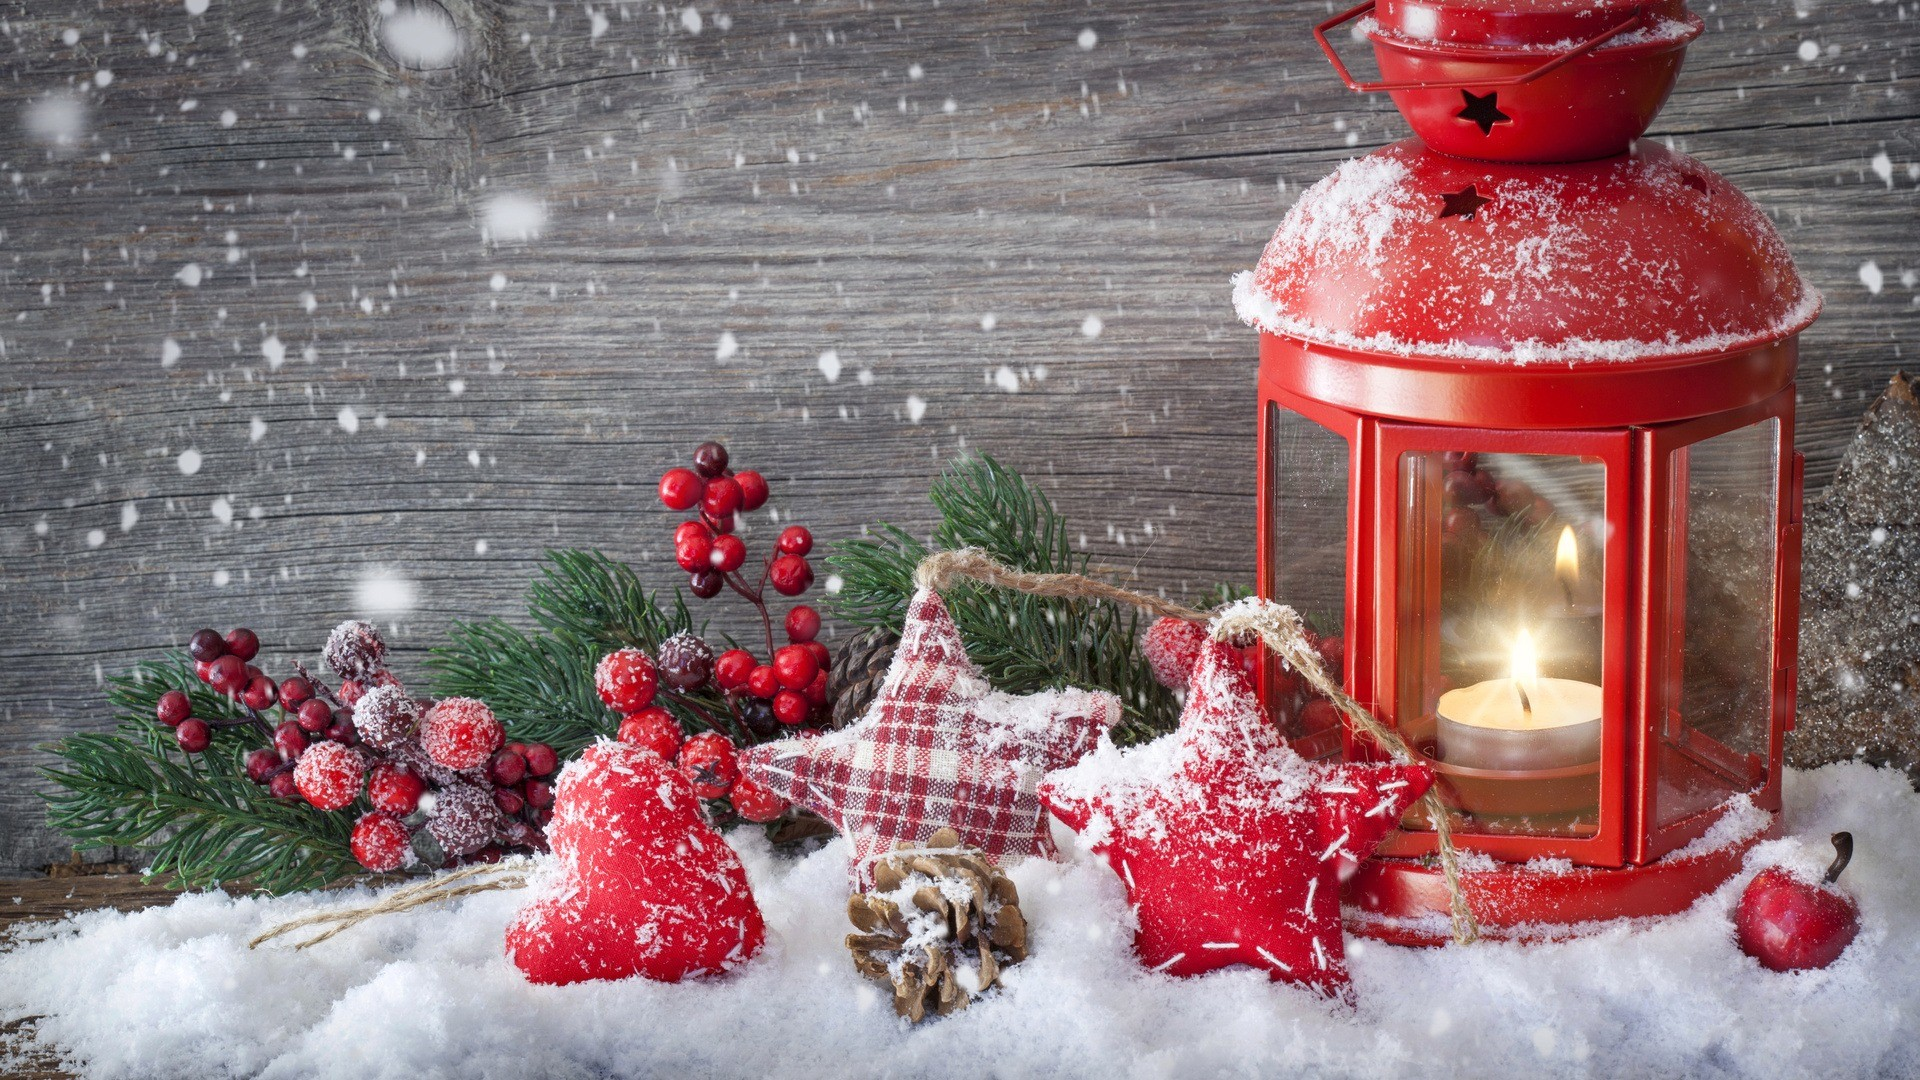 Christmas Wallpapers For Desktop 63 Pictures